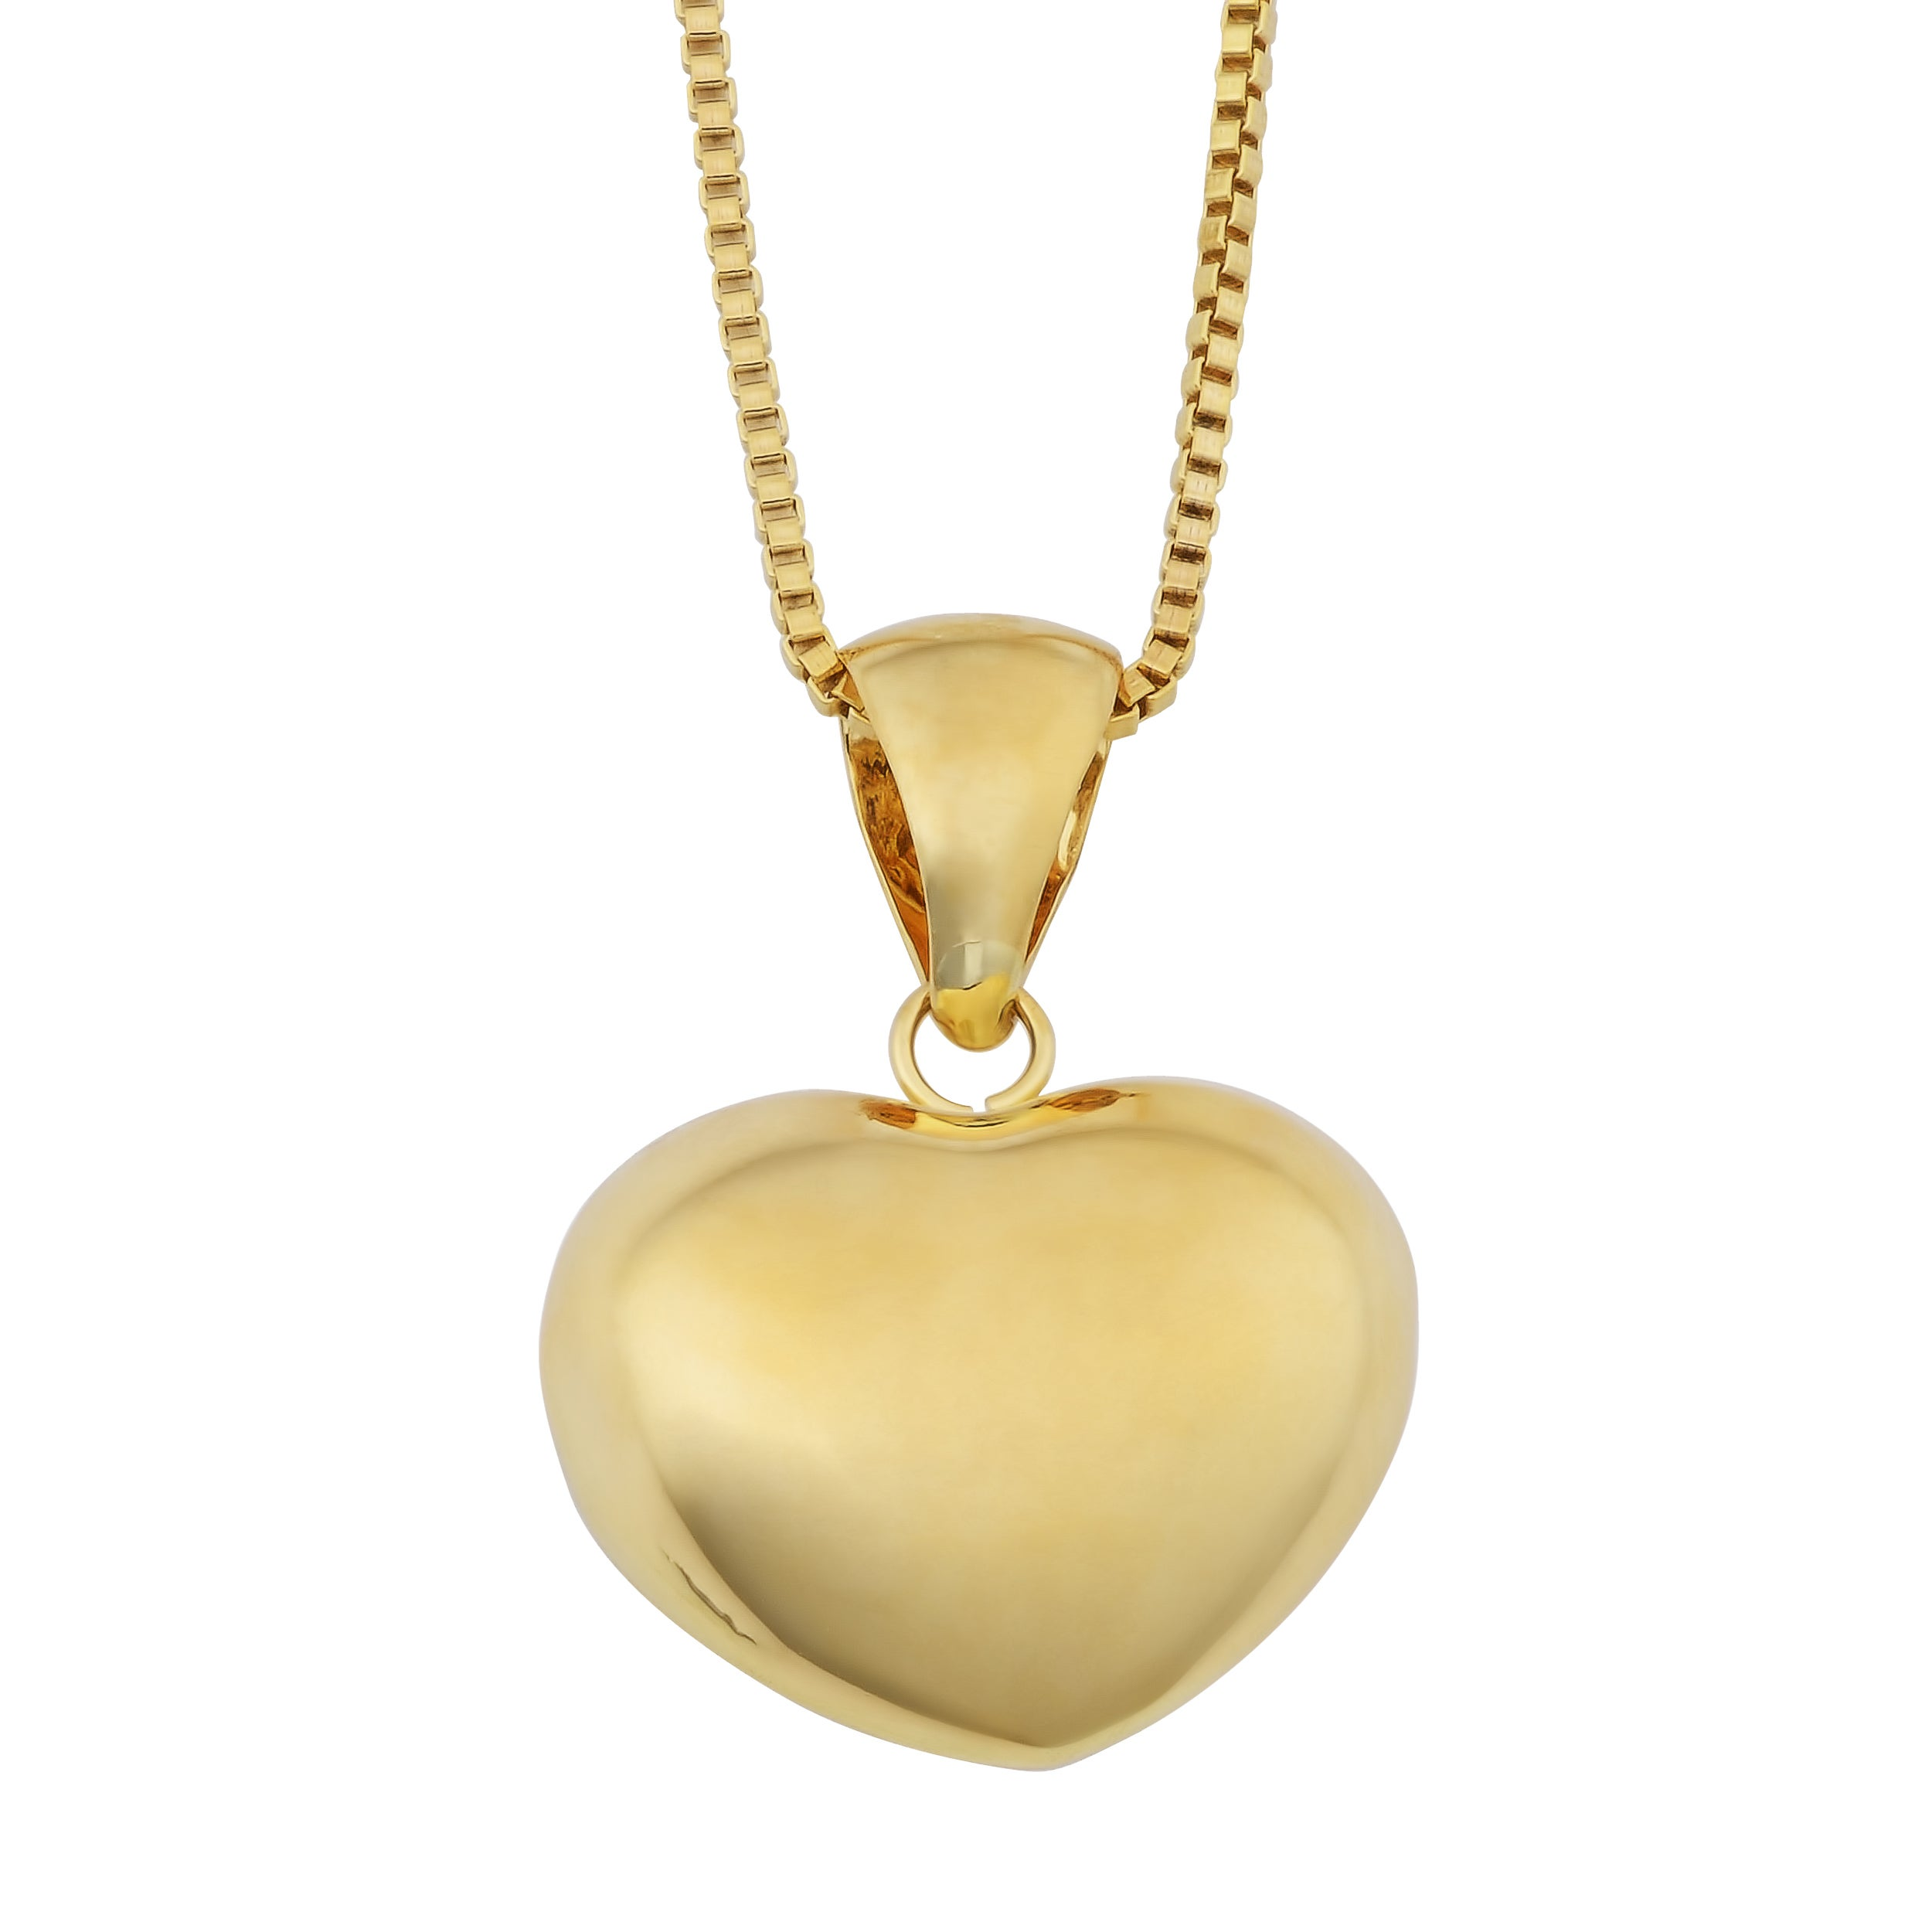 Fremada 18k yellow gold italian puffed heart pendant on fremada 18k yellow gold italian puffed heart pendant on complementary box chain necklace 18 inches free shipping today overstock 18479187 aloadofball Gallery